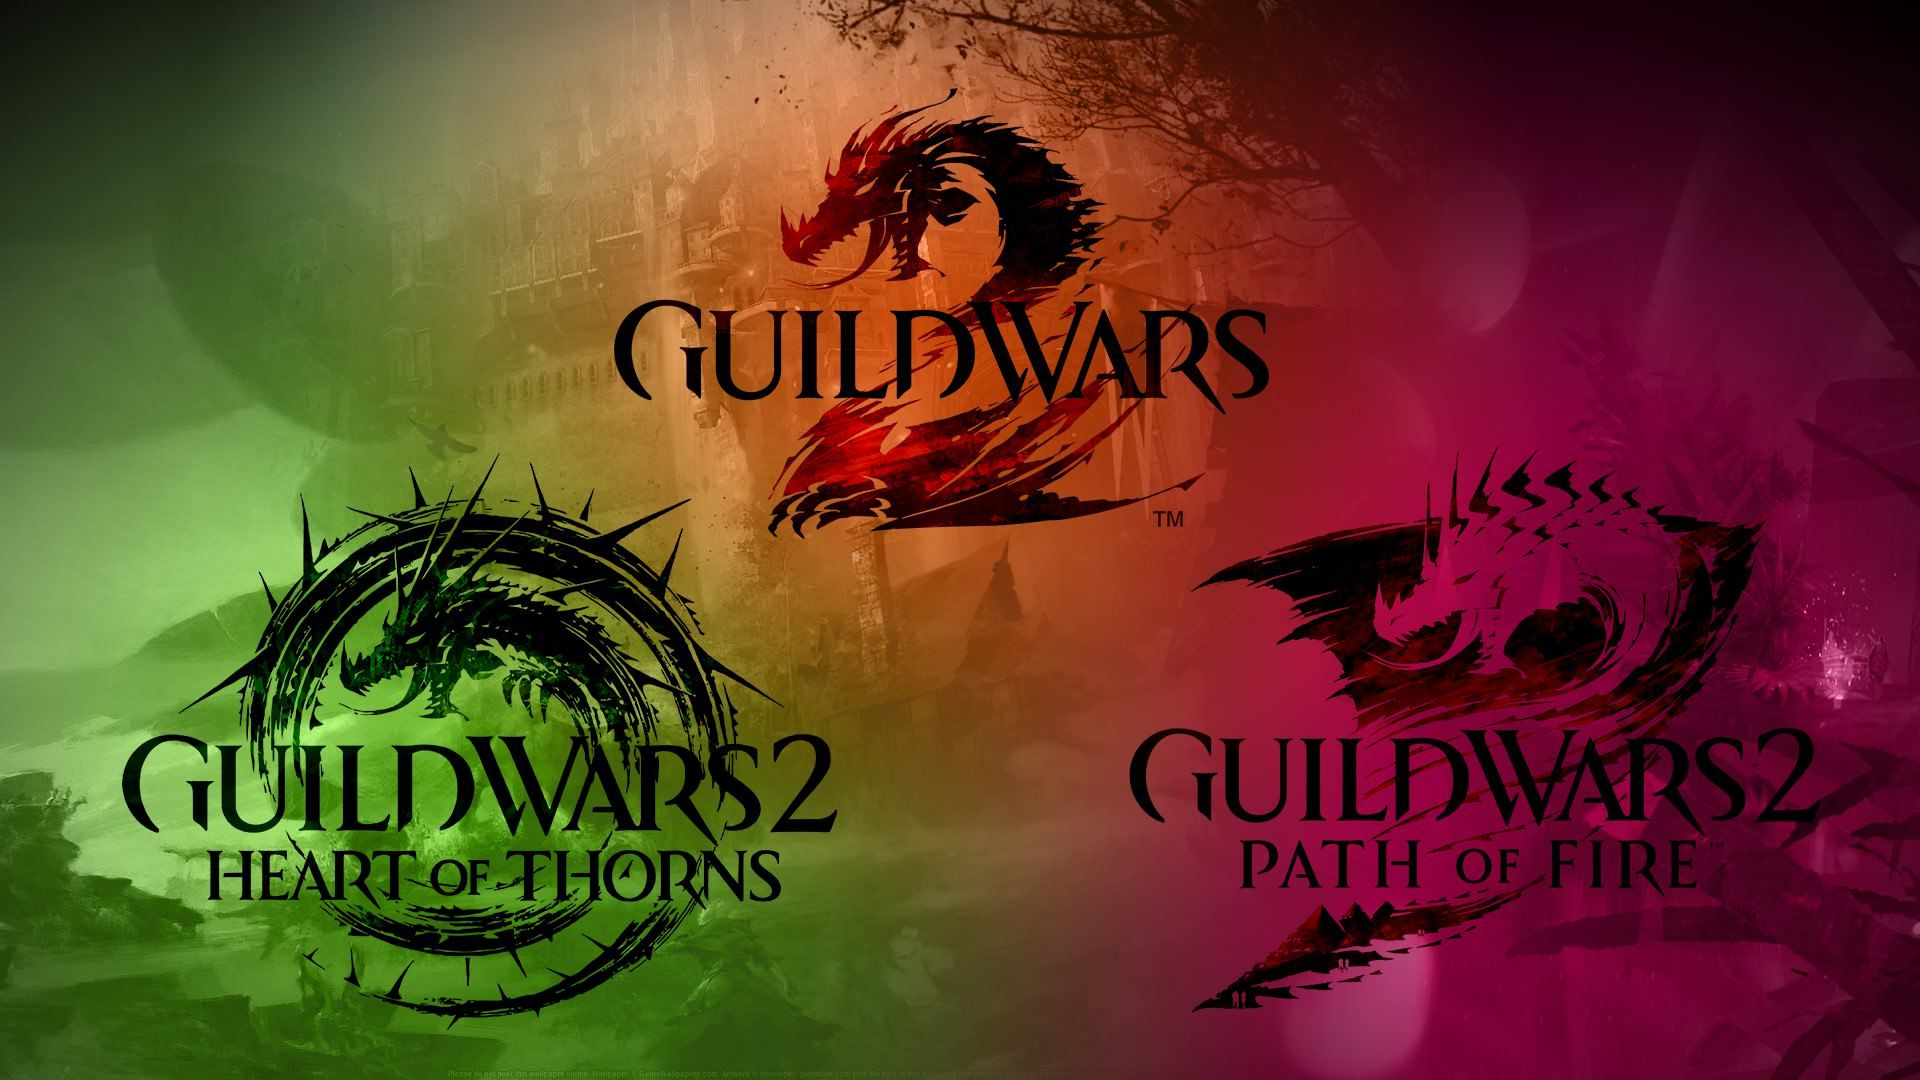 Guild Wars 2 Hot Pof Wallpaper I Made 1920x1080 Guild Wars